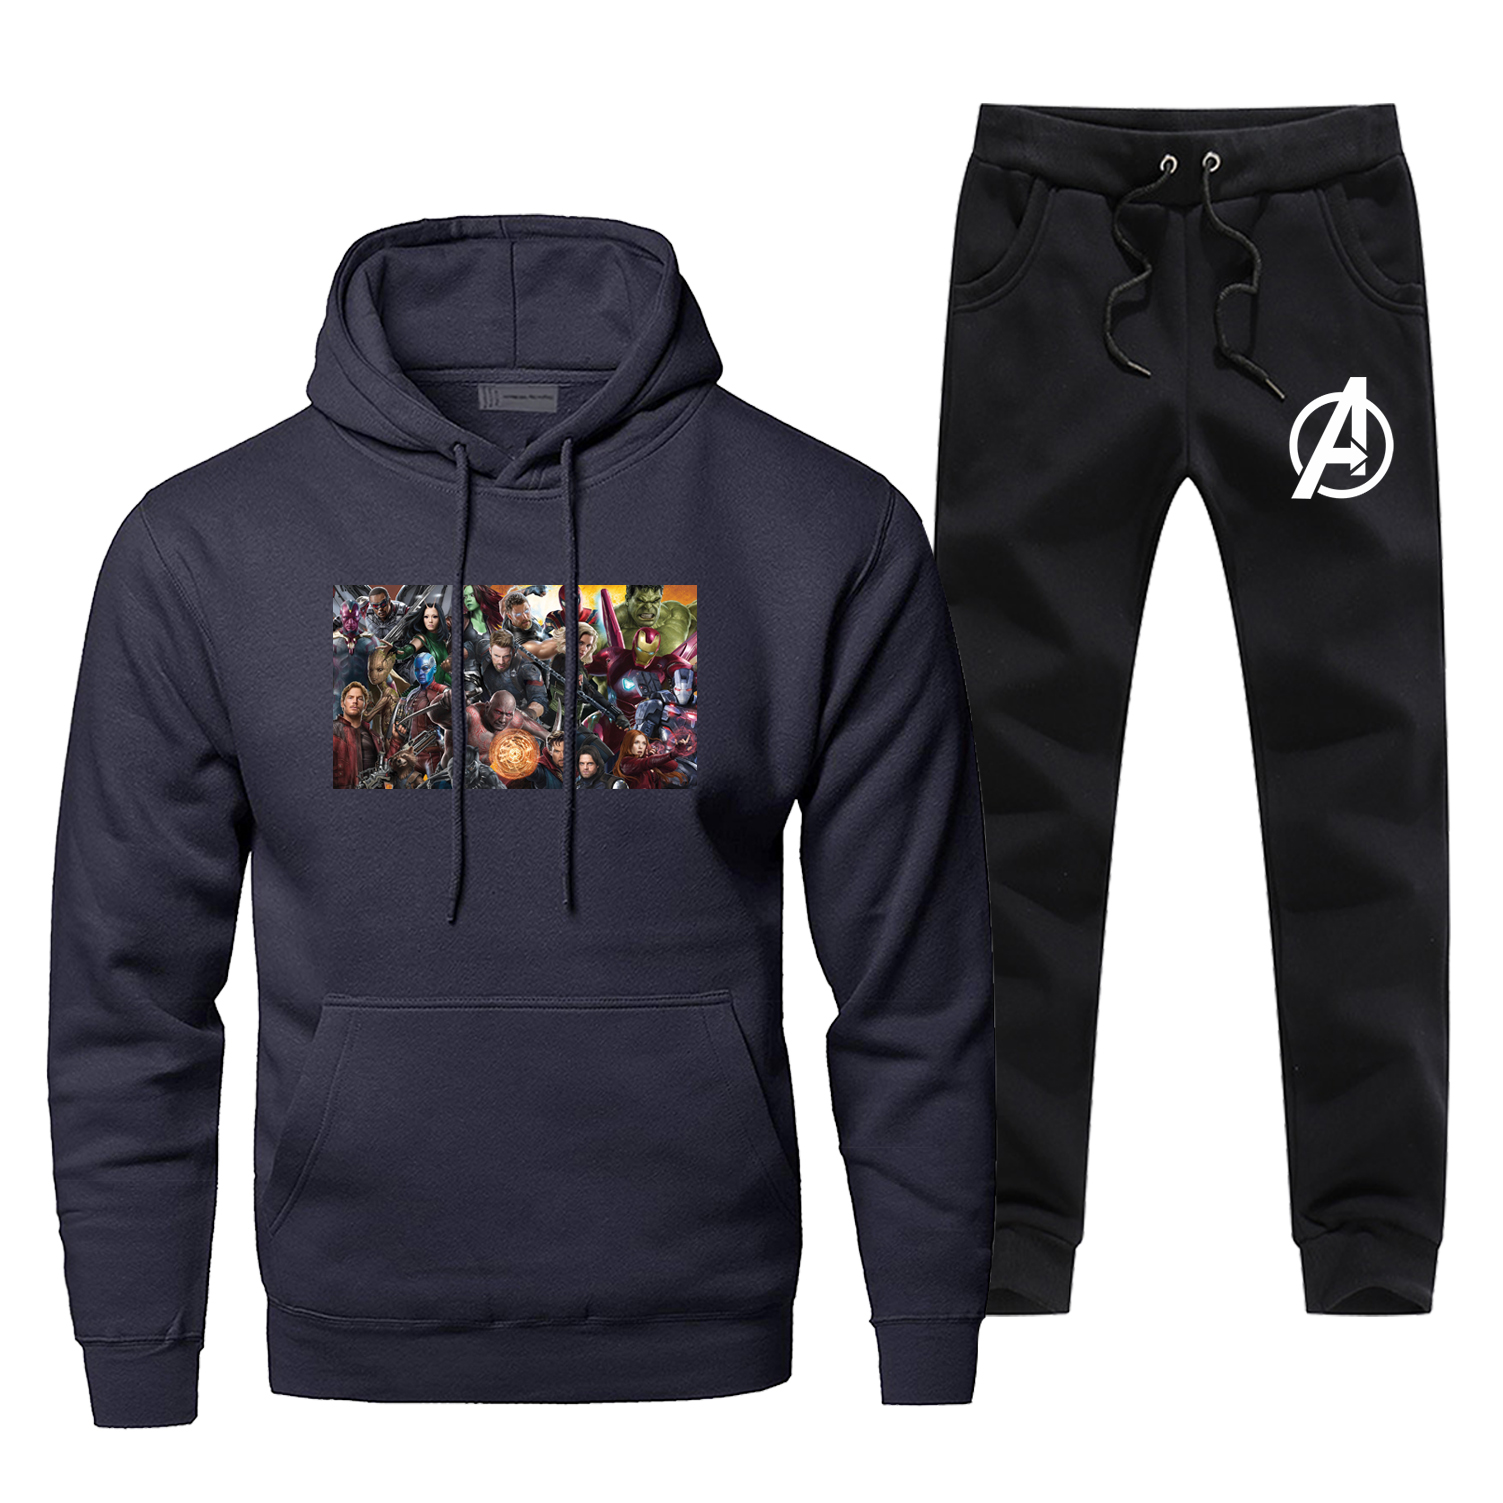 Fashion Marvel Hoodies The Avengers Superhero Team Hoodies+pants Sets Sweatshirt Men Fleece Sportswear Harajuku Streetwear